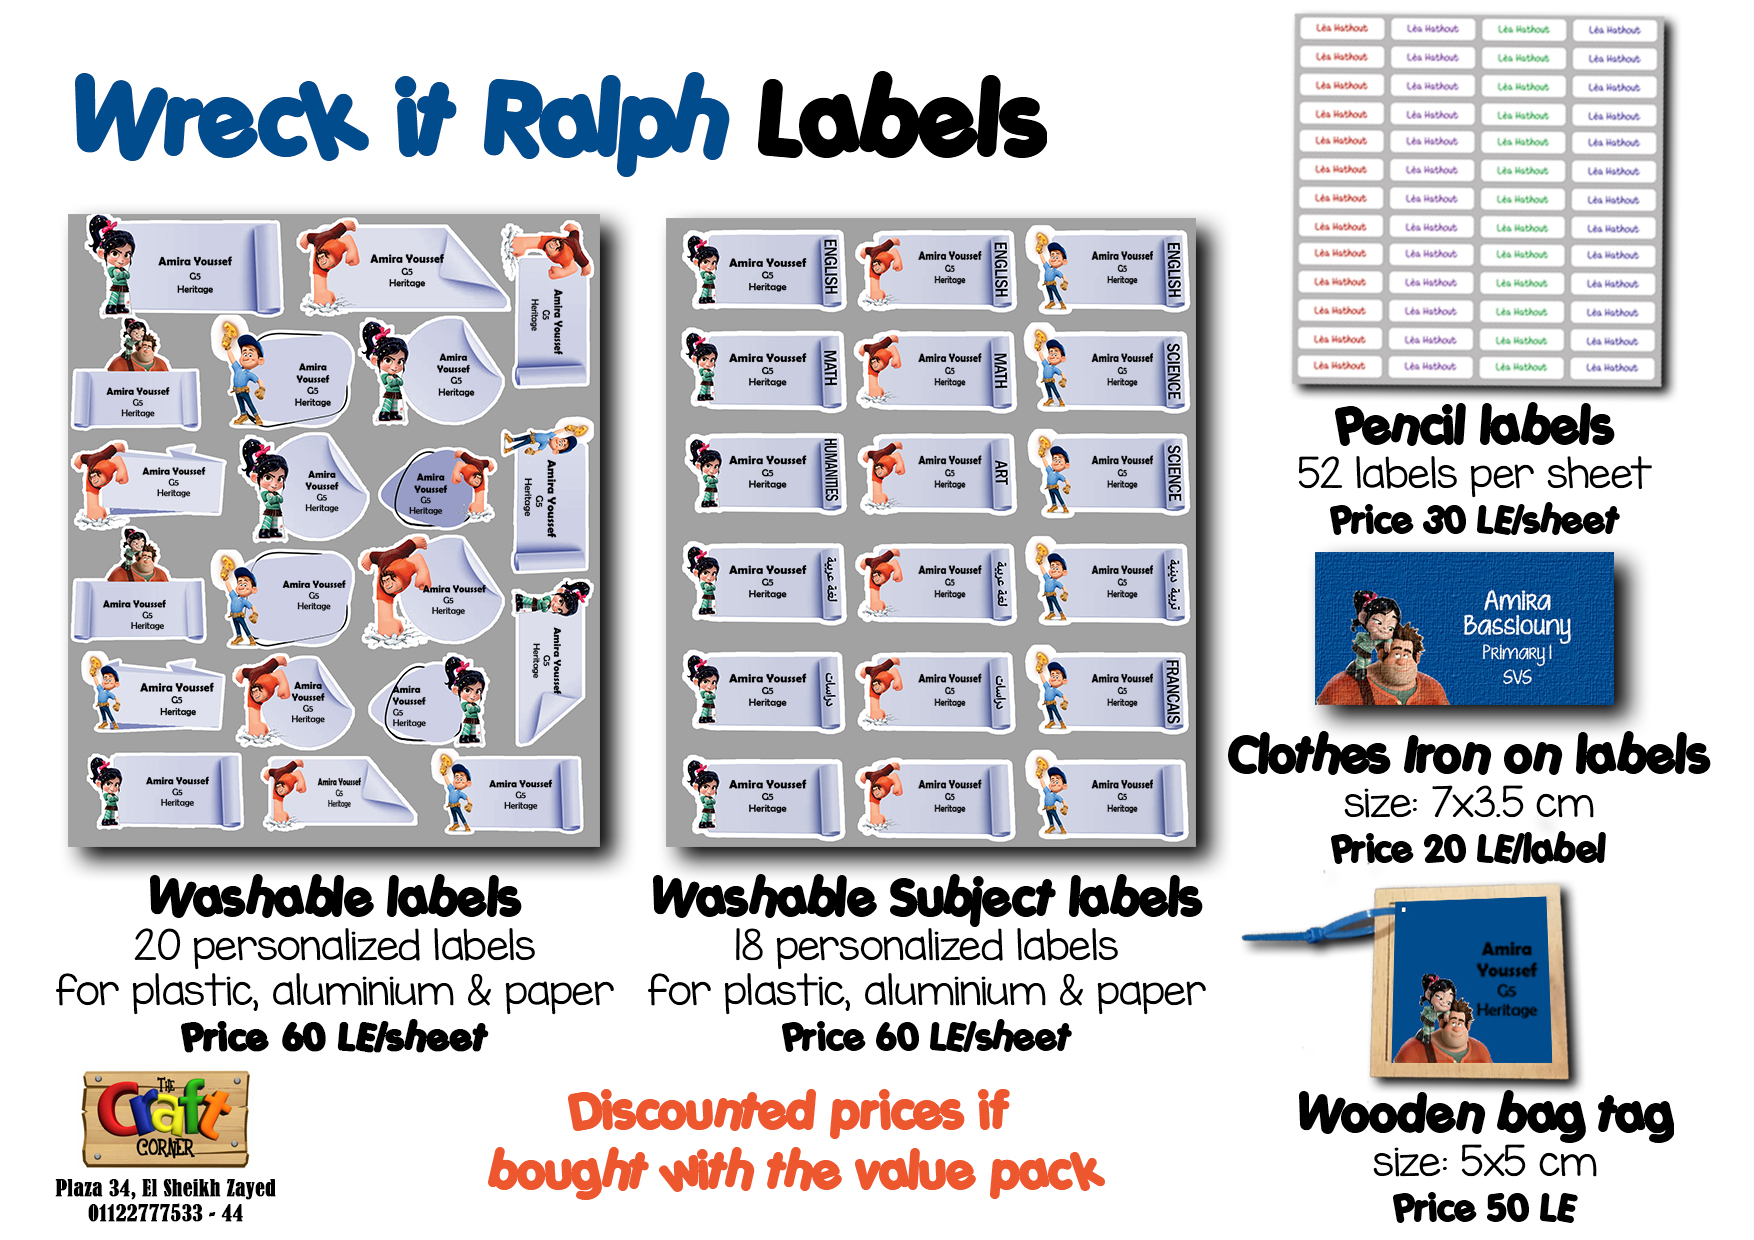 wreck it ralph Labels